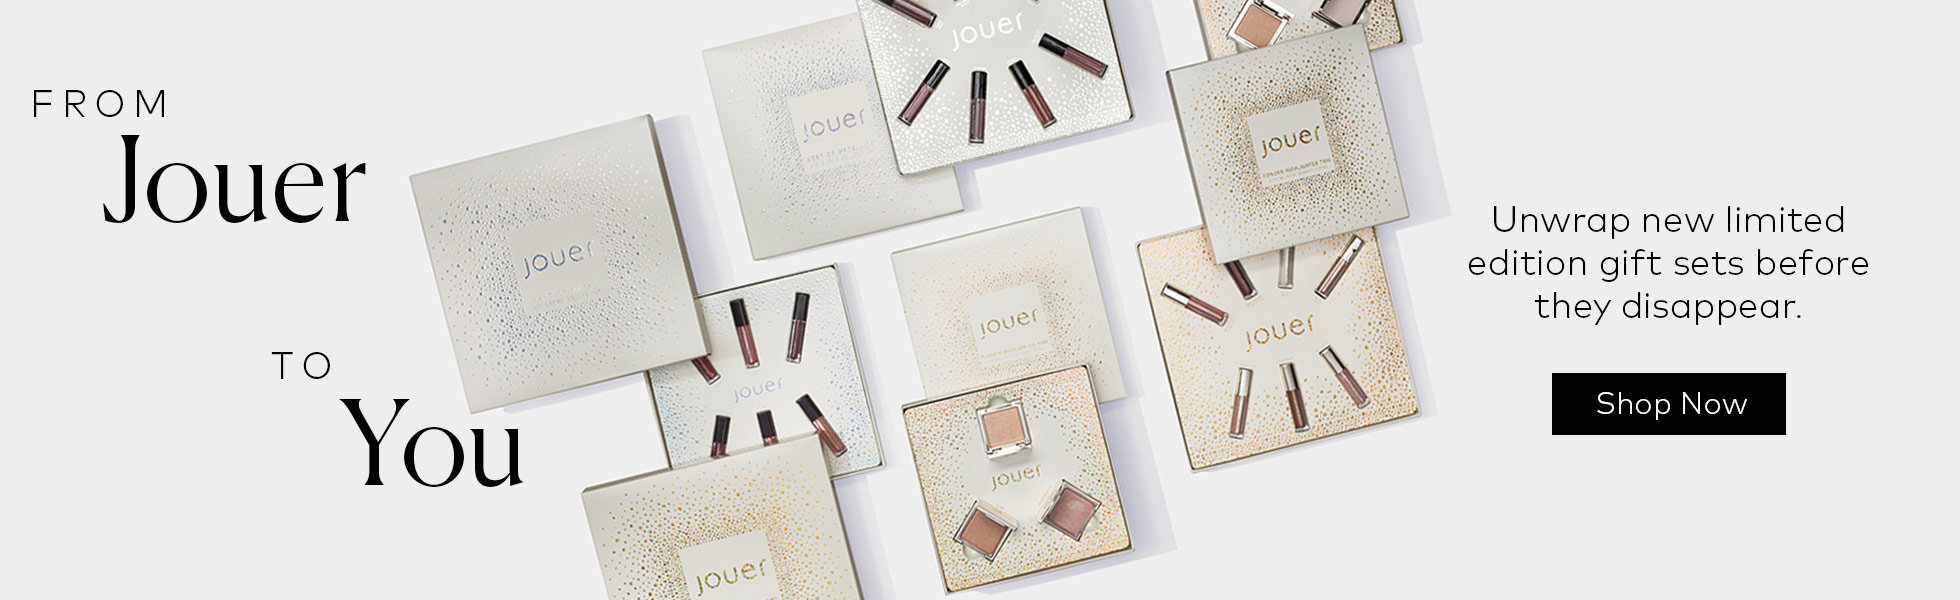 Limited Edition Holiday Gift Sets from Jouer